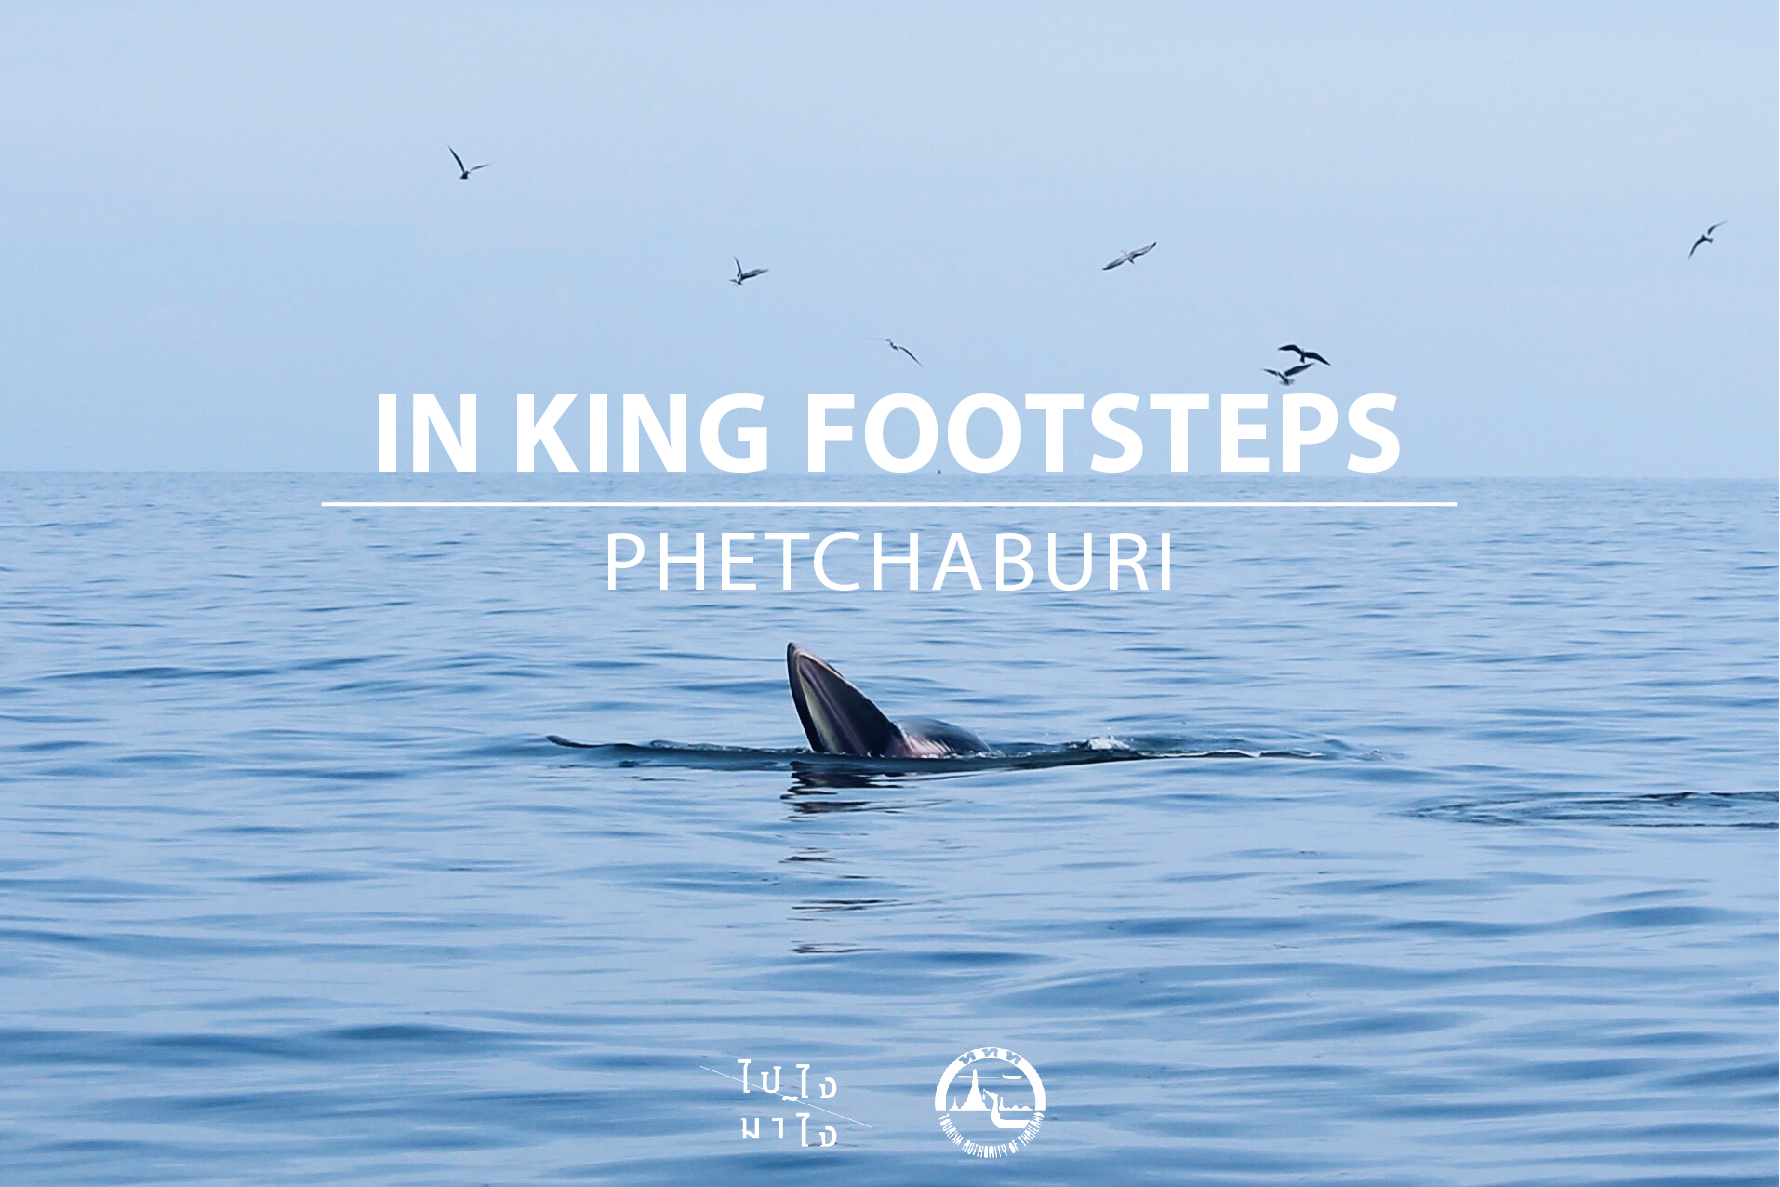 IN KING FOOT STEPS, PHETCHABURI